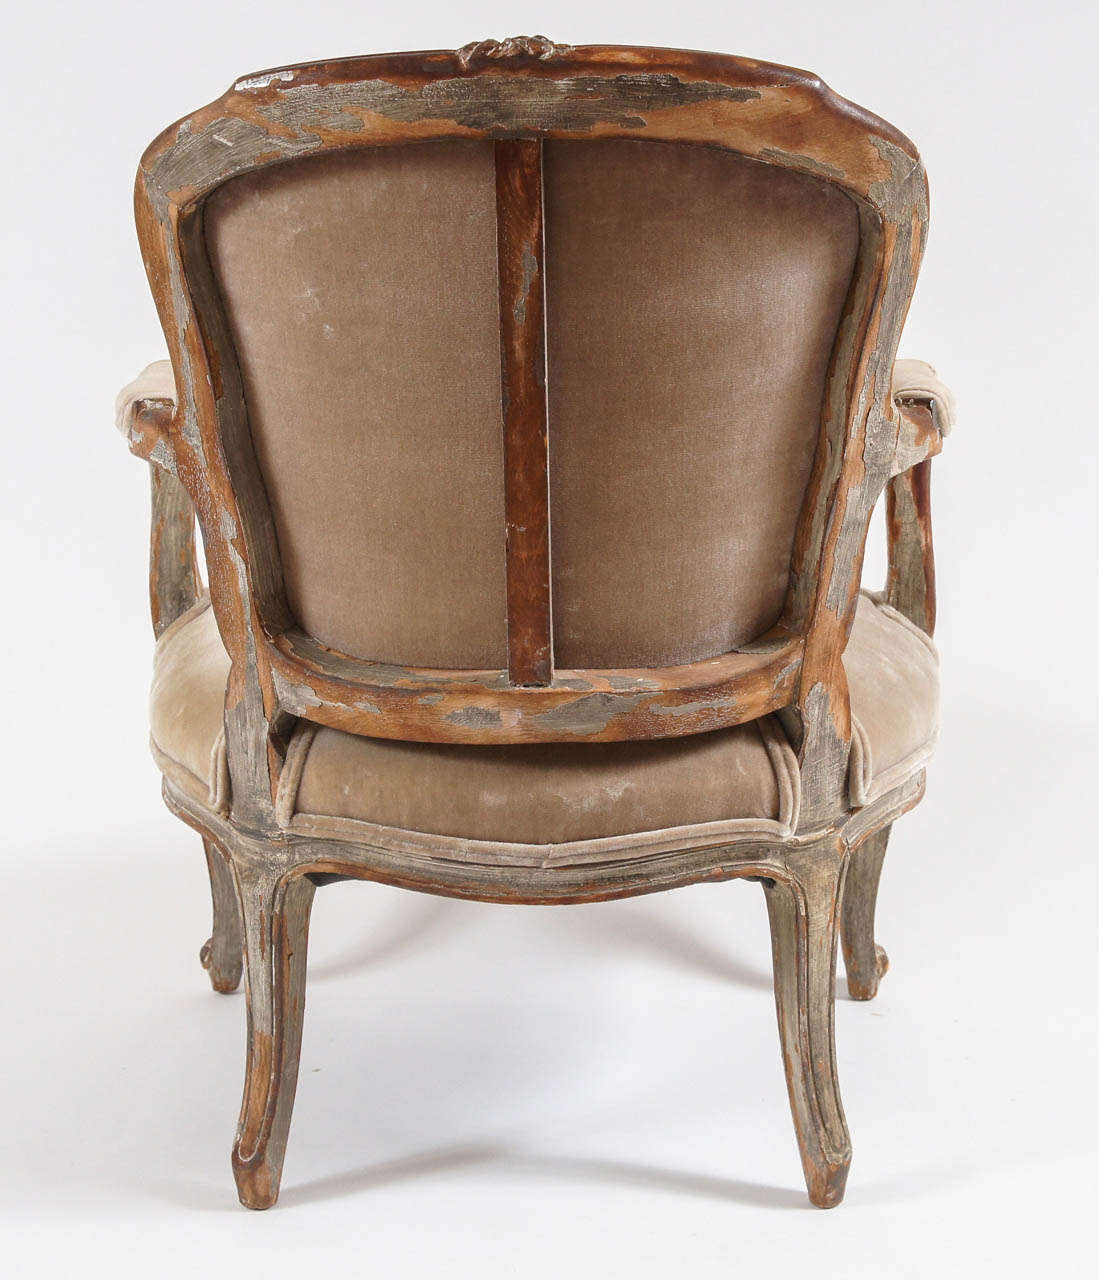 louis xv painted fauteuil france circa 1740 at 1stdibs. Black Bedroom Furniture Sets. Home Design Ideas